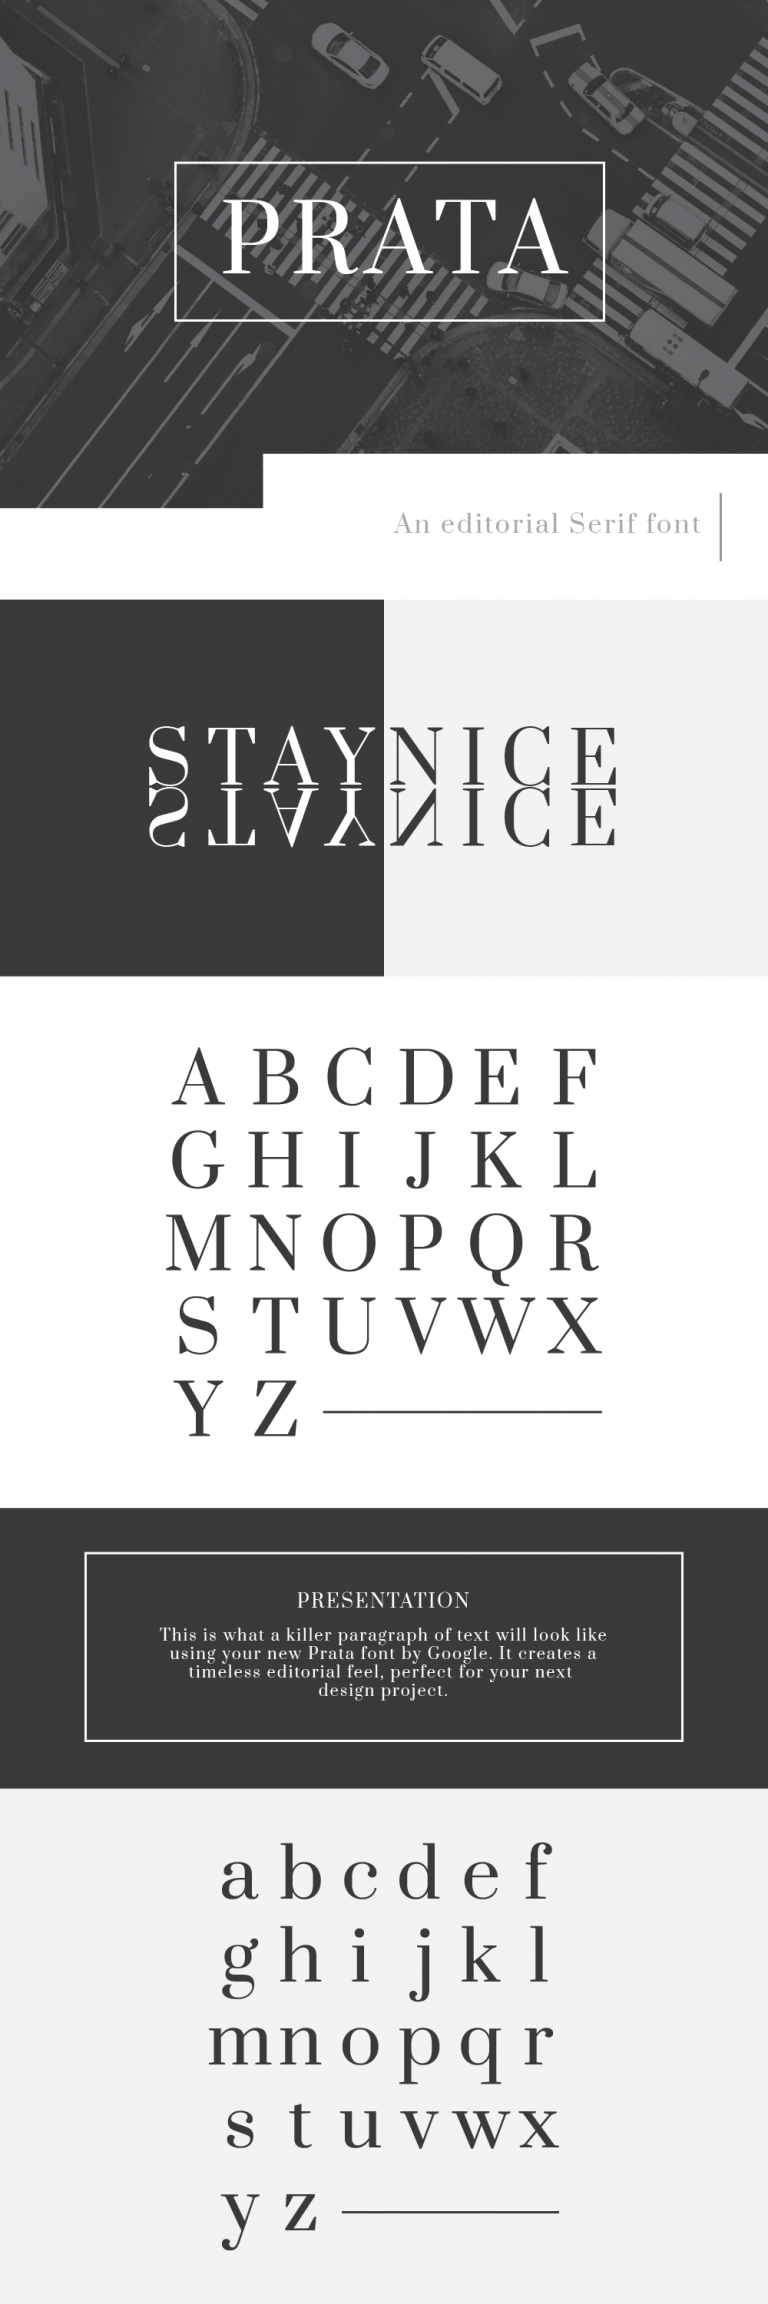 Prata font is a beautiful serif display font by Google, free for download.